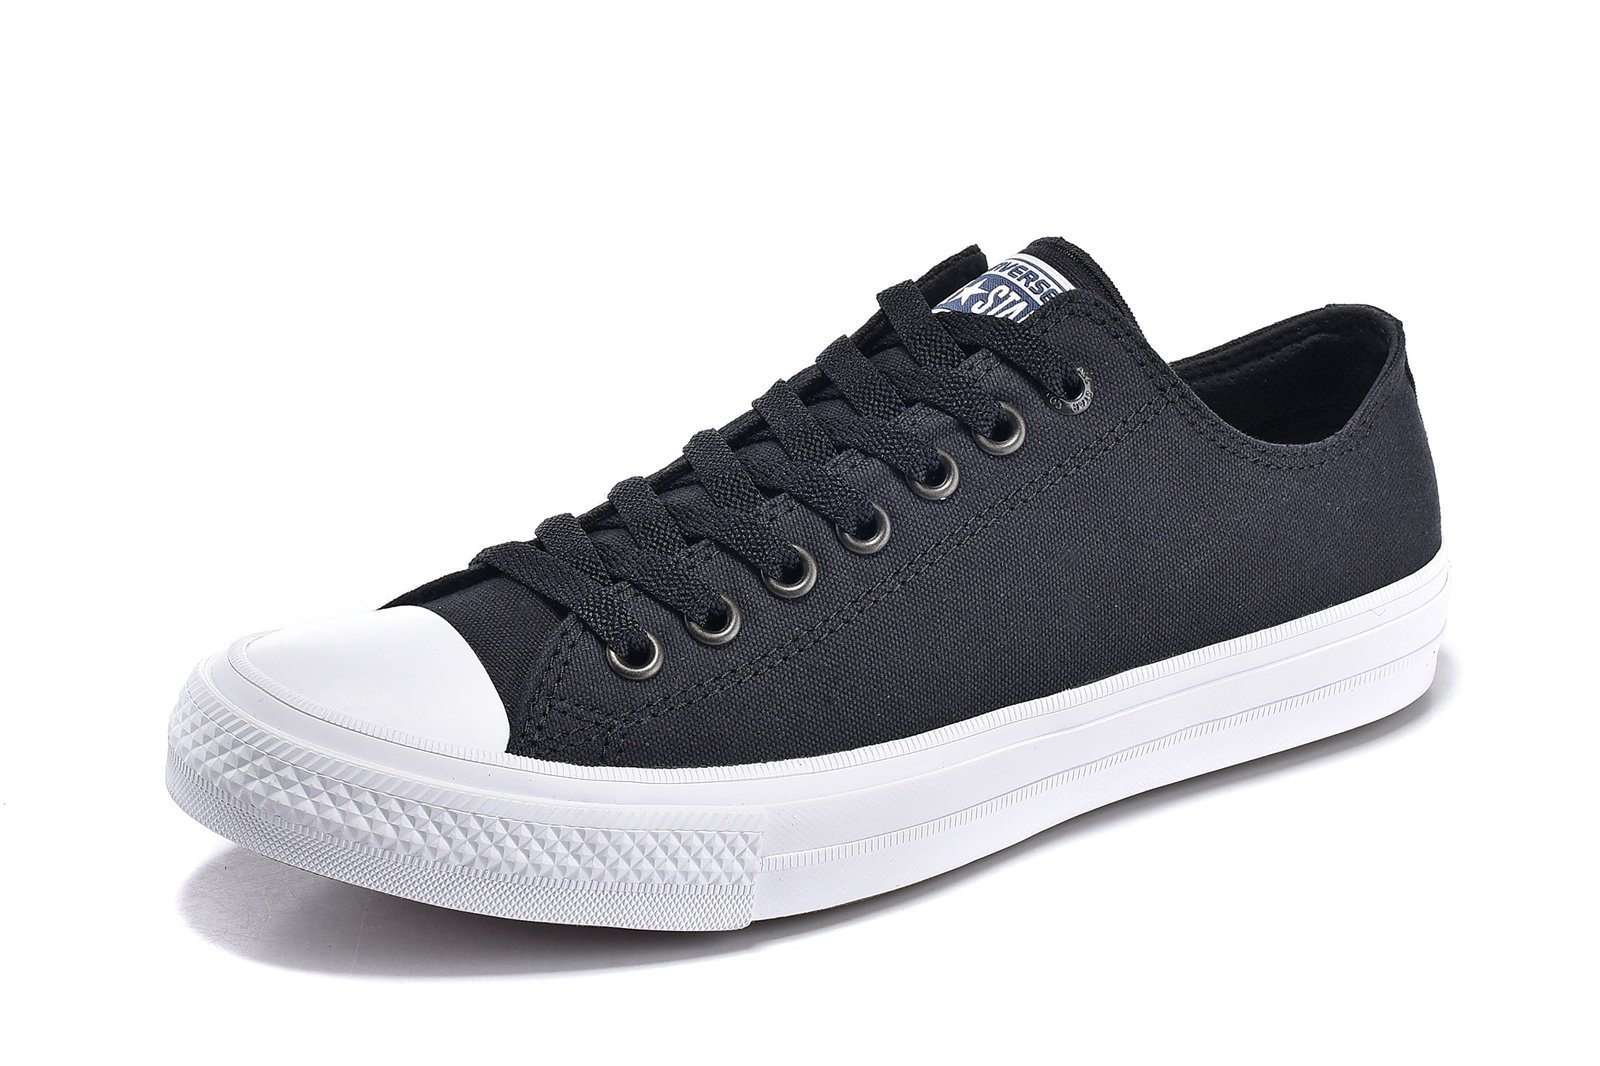 Converse Unisex Low Top Chuck Taylor All Star II Canvas Shoes